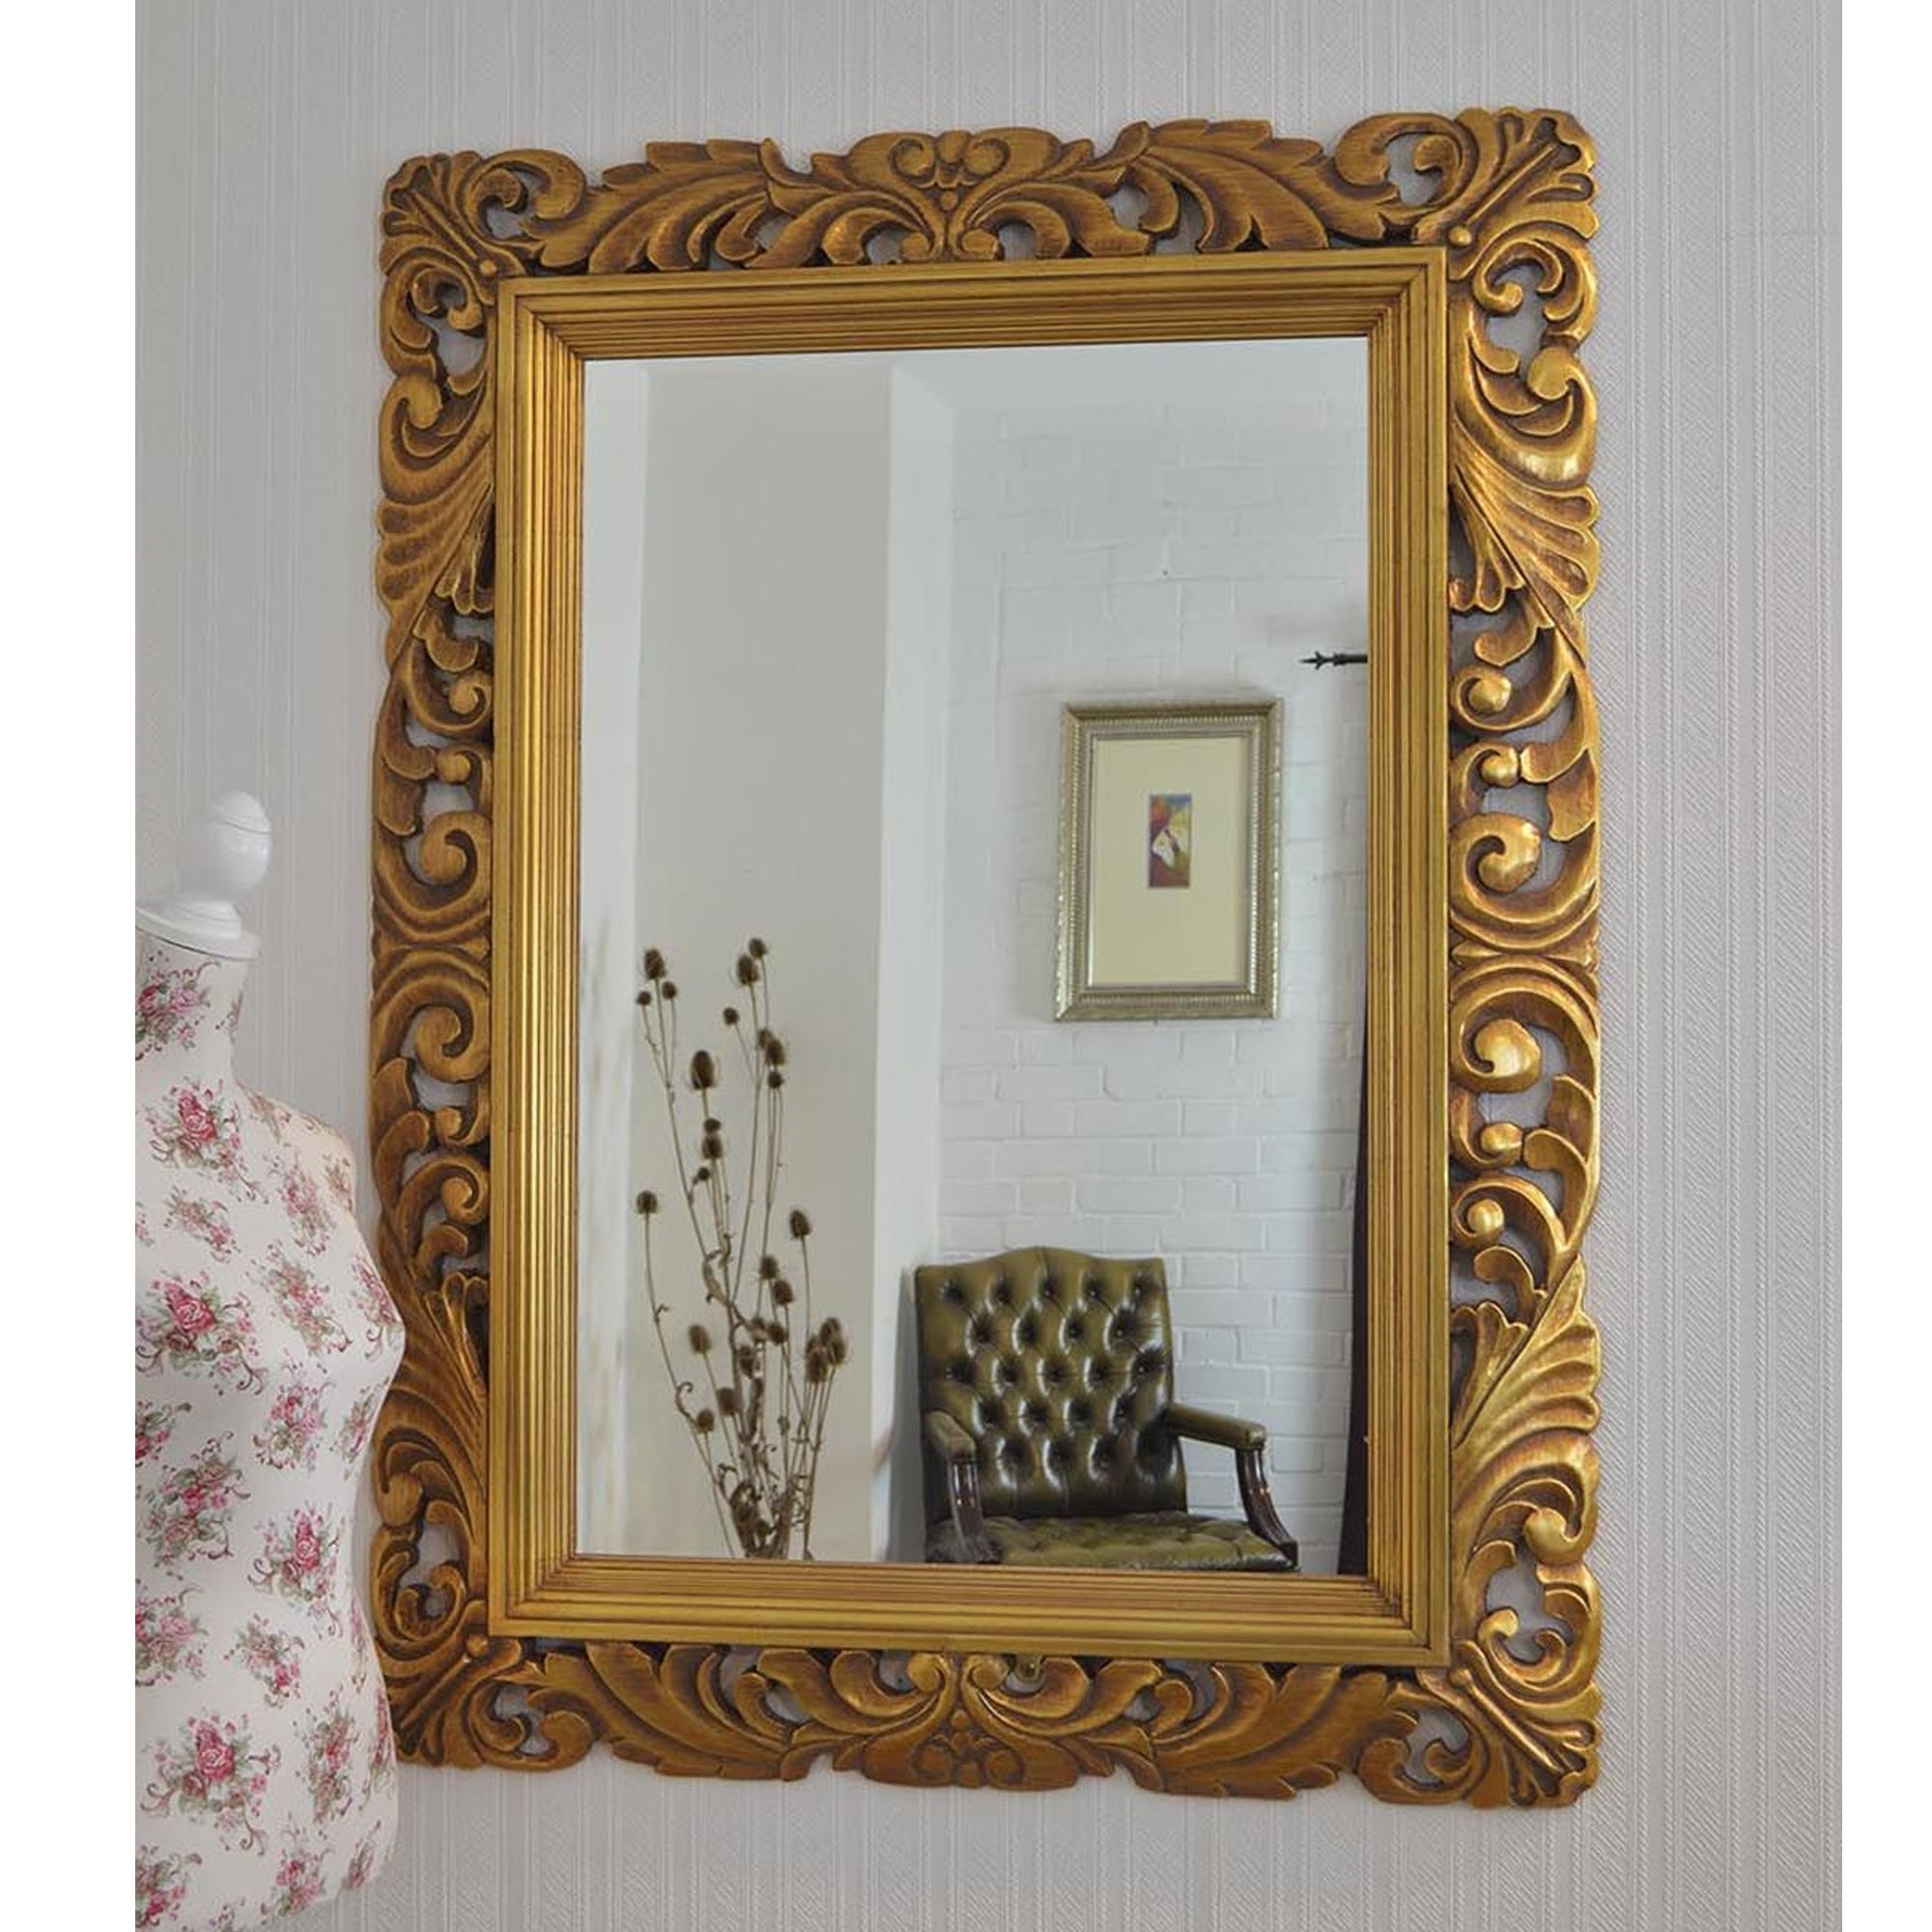 Antique Wall Mirrors Within Newest Ornate Framed Gold Antique French Style Wall Mirror (View 6 of 20)